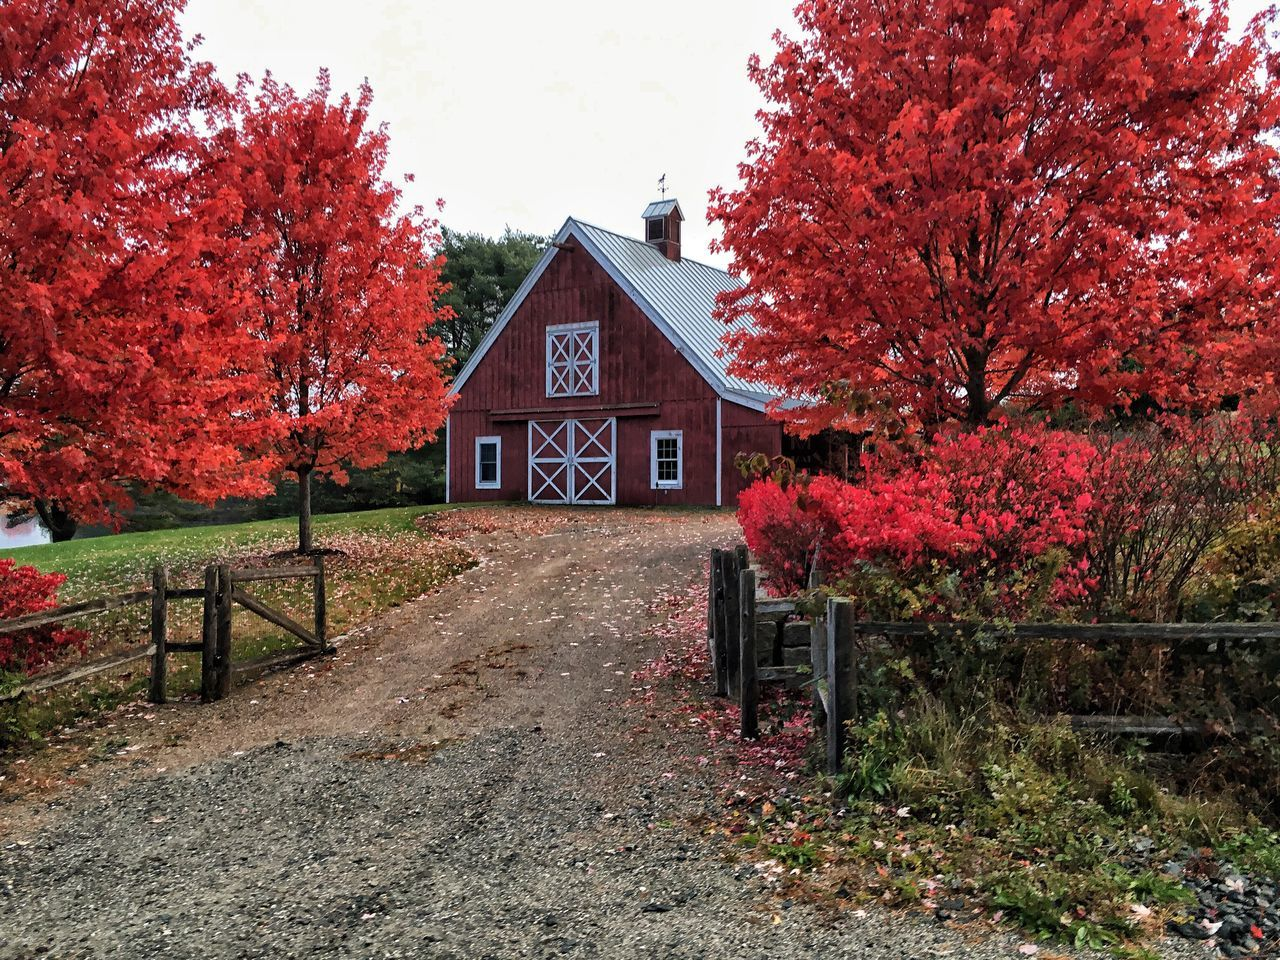 autumn, tree, house, built structure, architecture, building exterior, change, no people, day, outdoors, nature, leaf, red, beauty in nature, sky